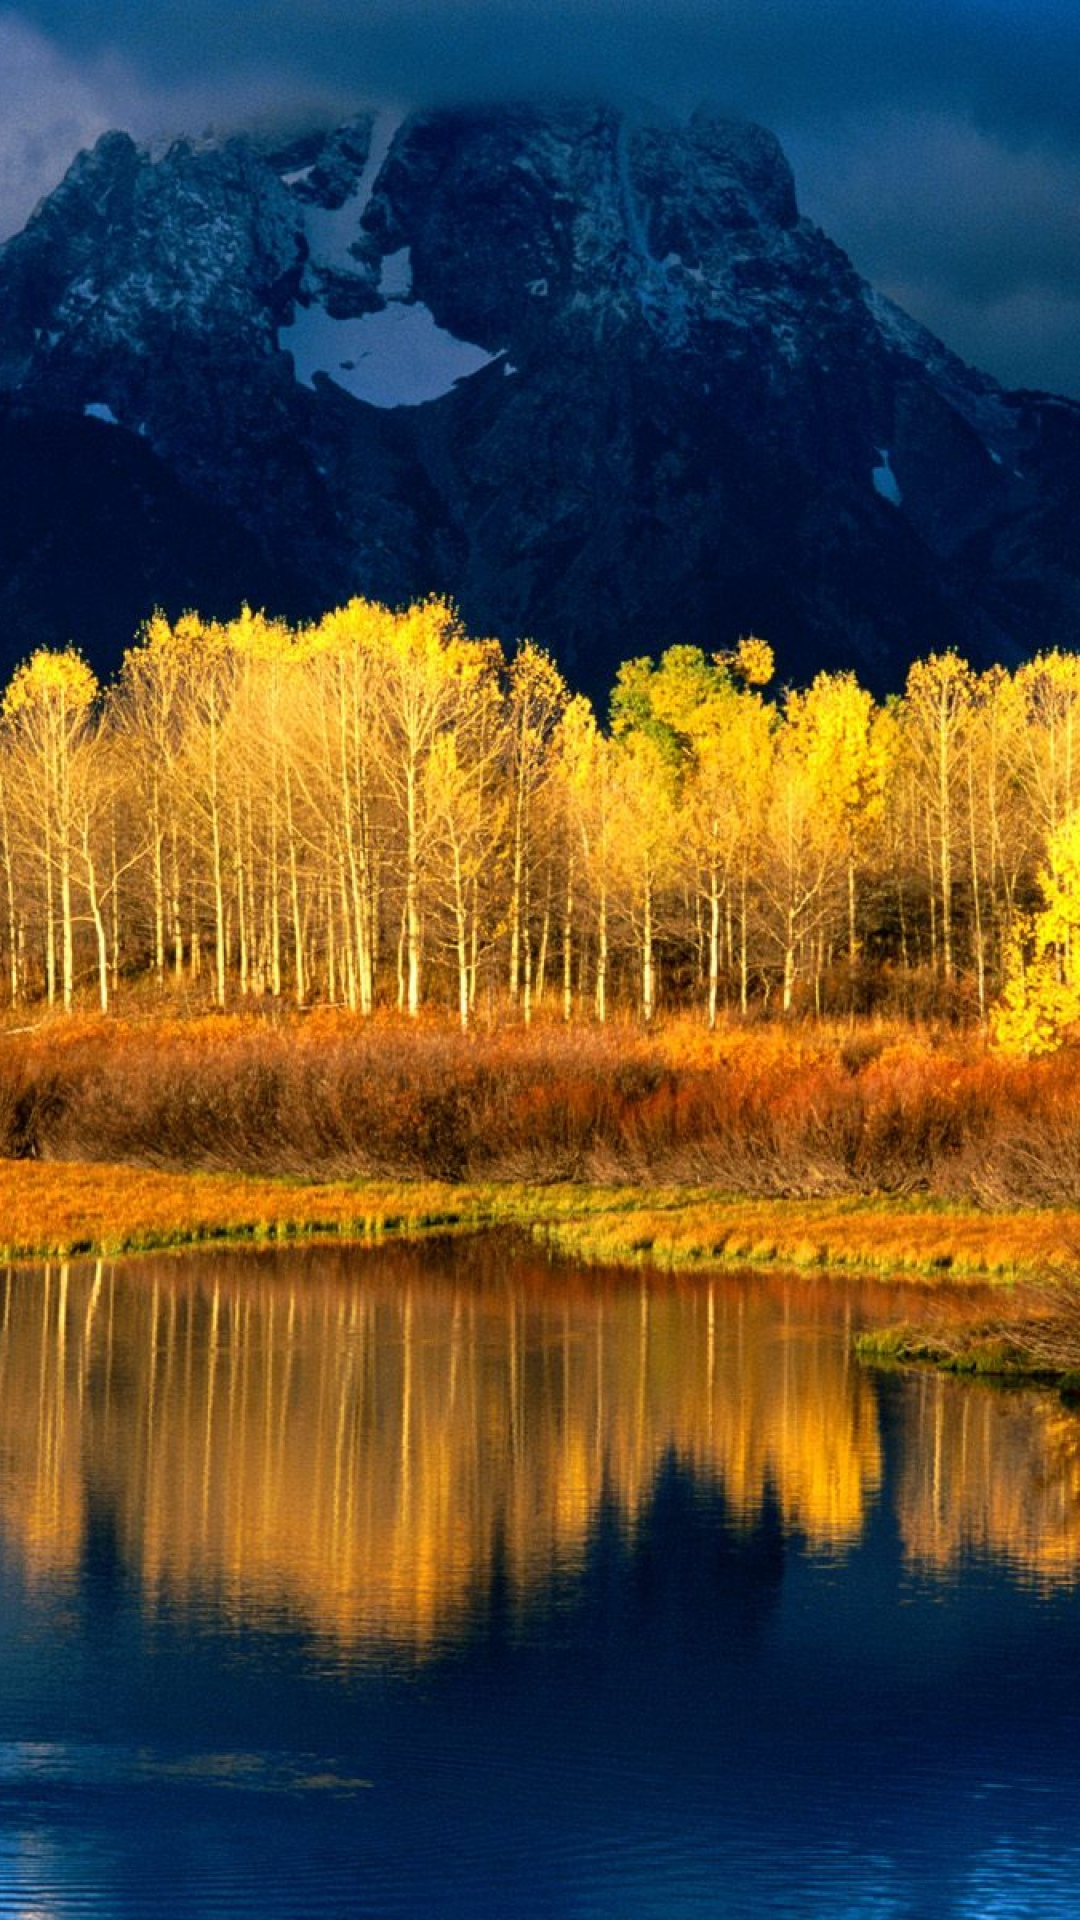 autumn-leaves-yellow-trees-reflection-peak-wallpaper-wp3602838